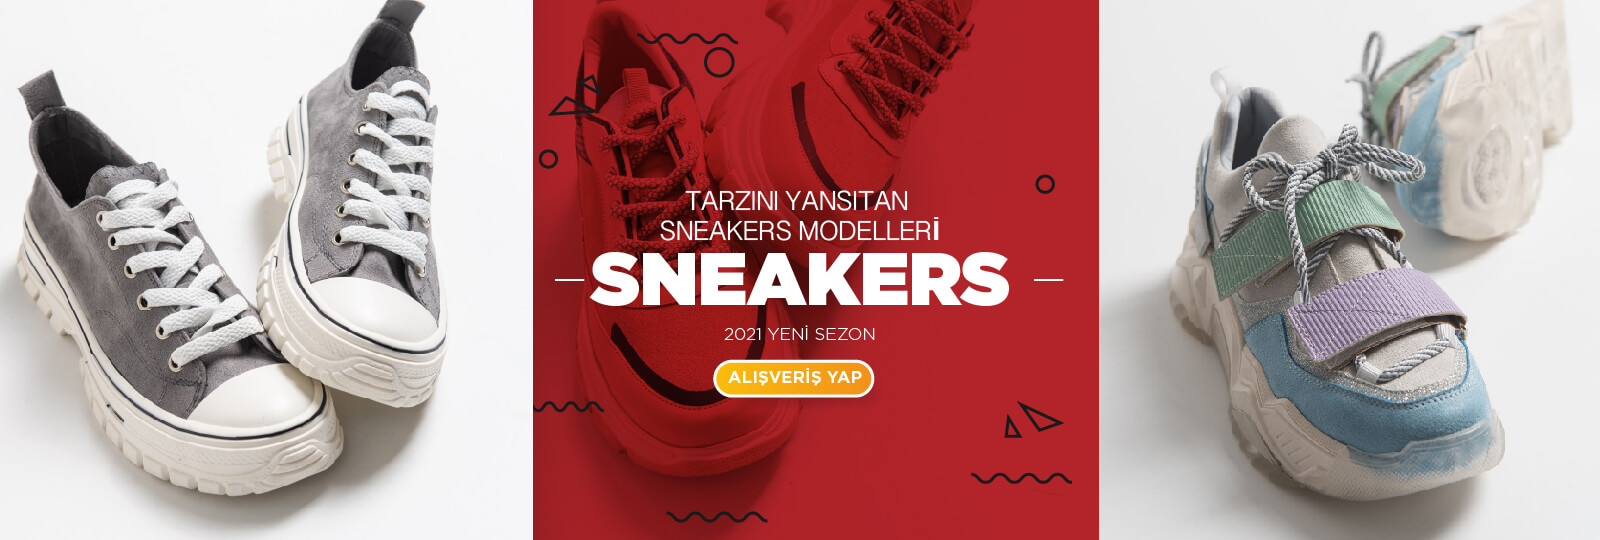 sneakers - new